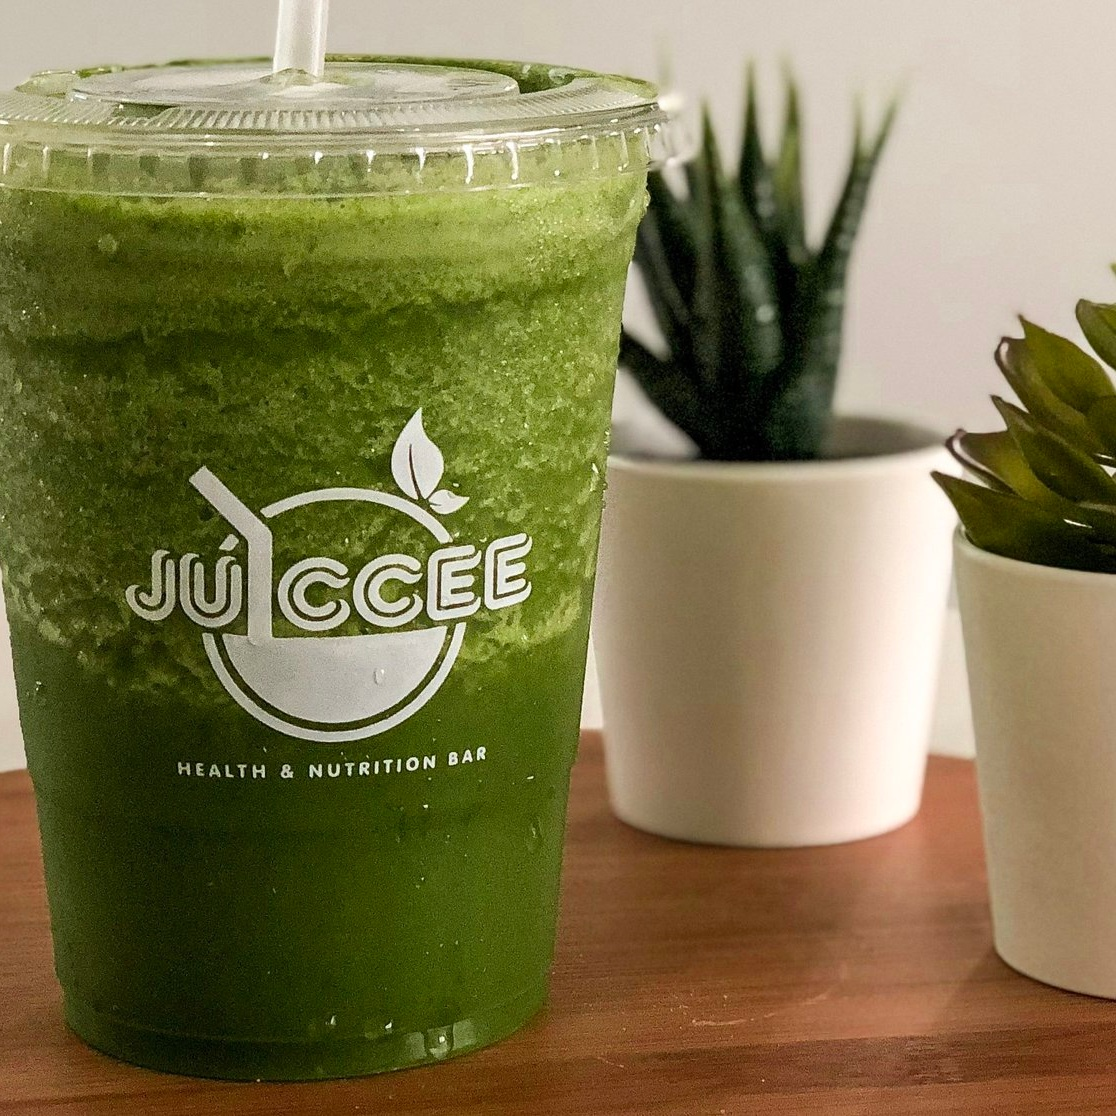 - GREEN MUCHOur most popular smoothie, a fresh blend of kale, spinach, avocado, and banana.